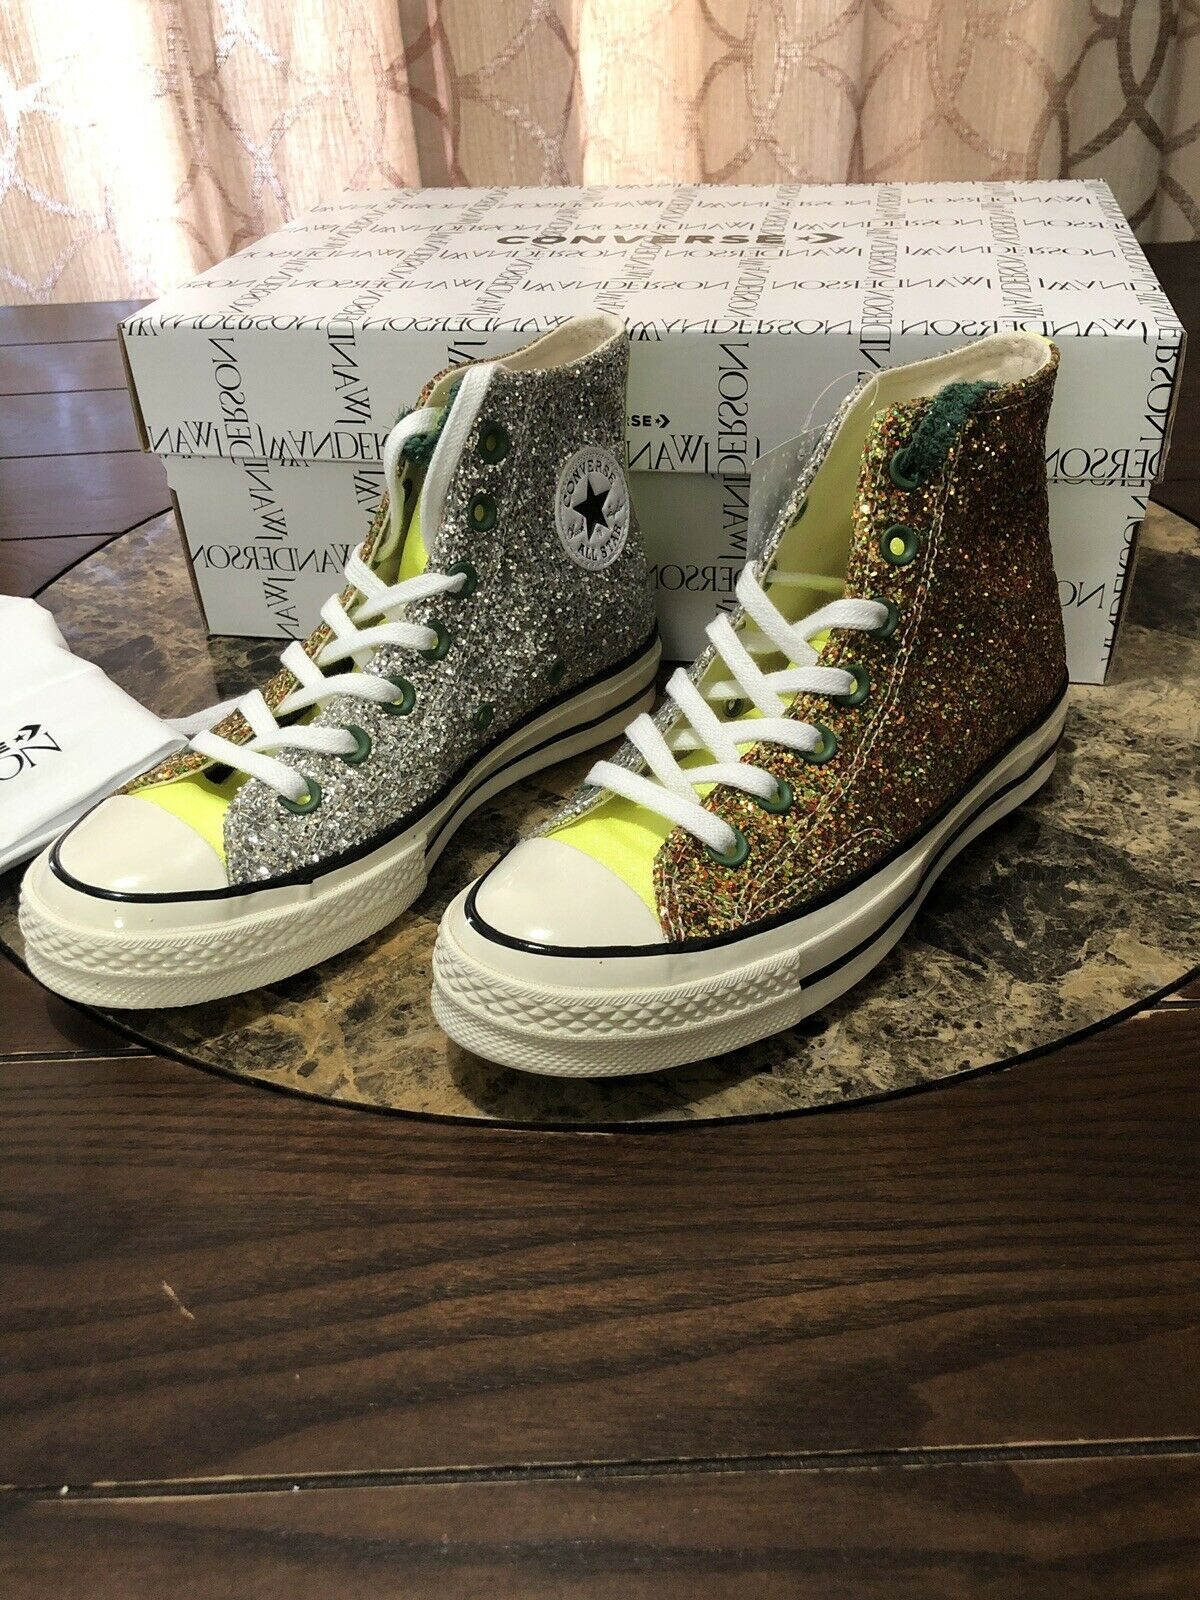 Converse Chuck Taylor All Star 70s Hi JW Anderson Glitter Gold Silver